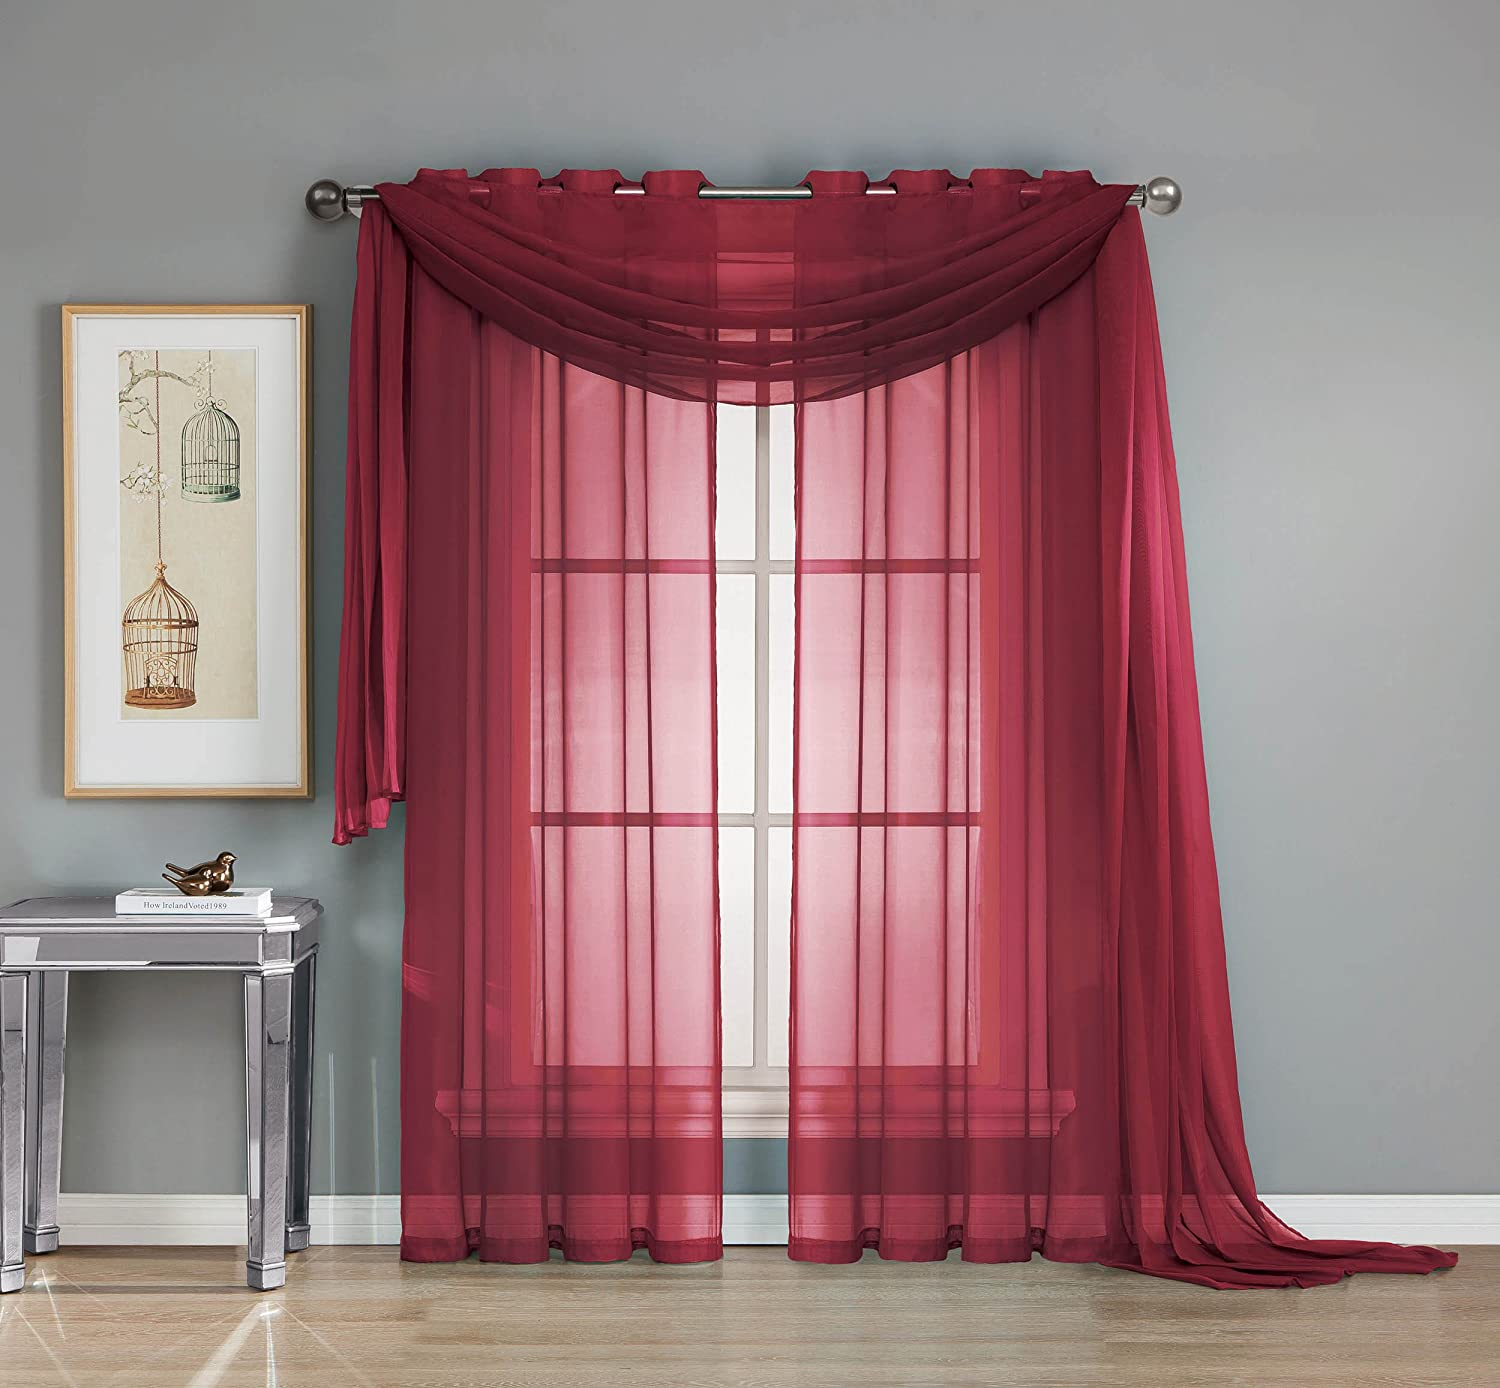 Gold Curtain Panel Window Elements Sheer Voile Grommet Extra Wide 54 x 84 in